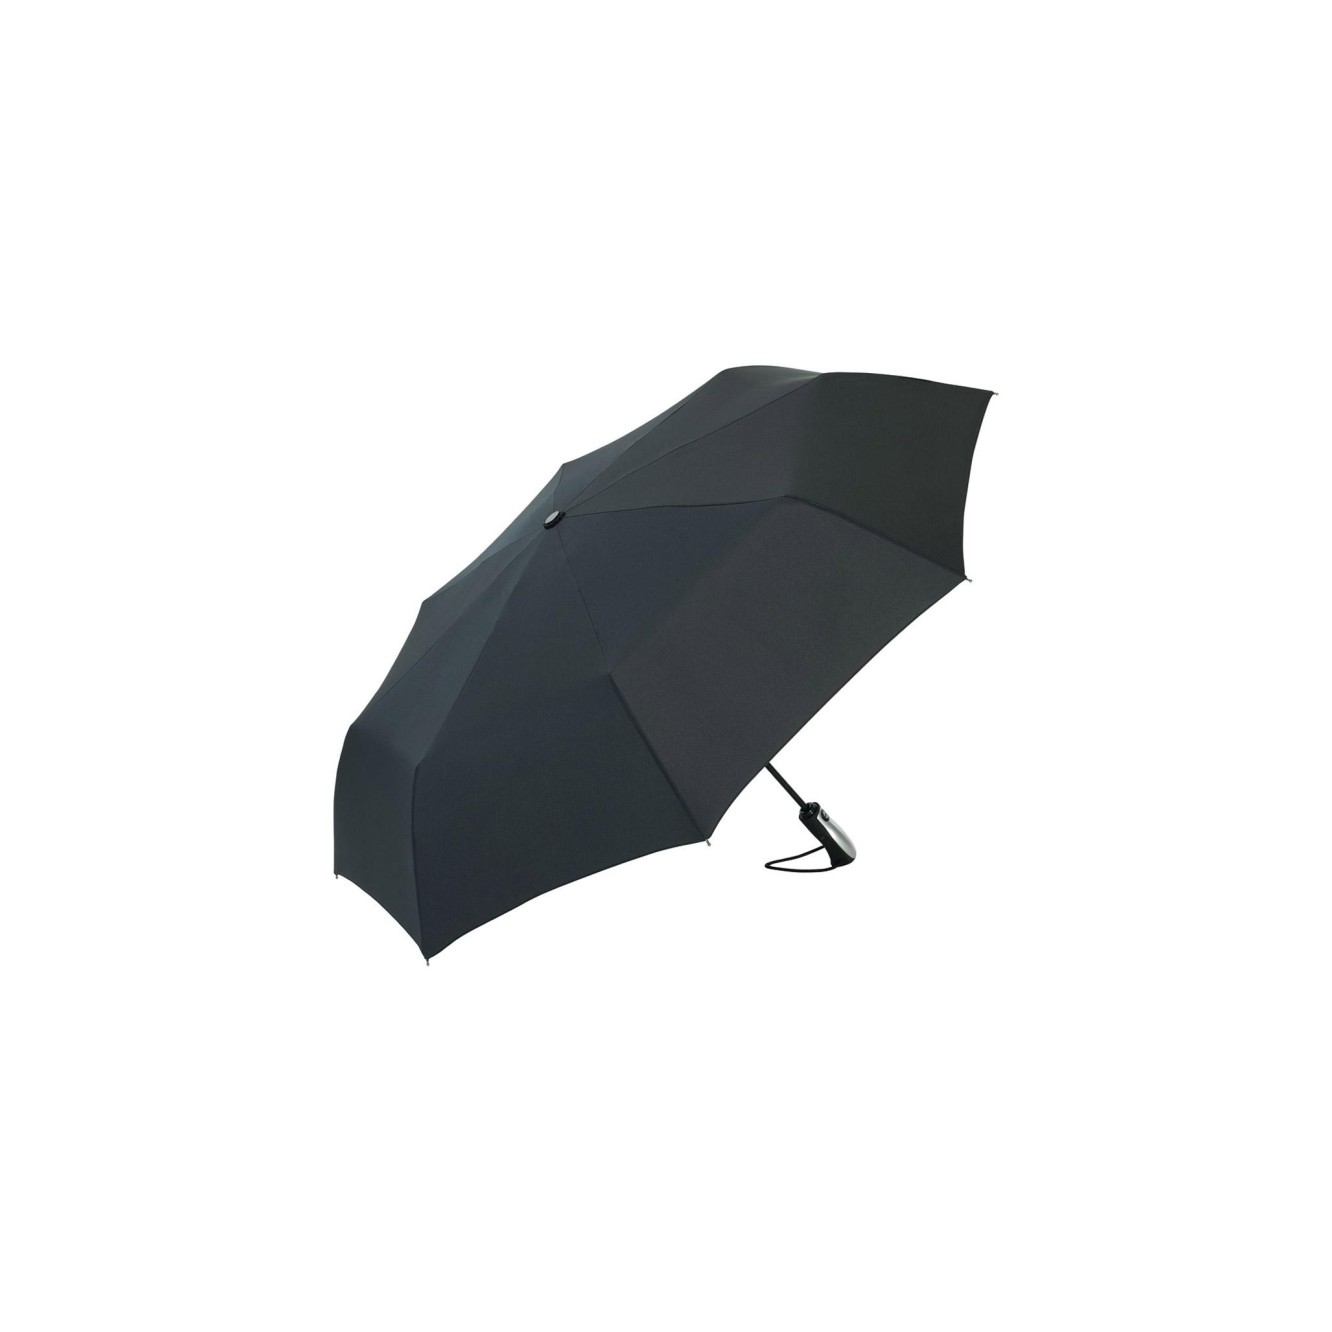 AOC oversize mini umbrella Stormmaster